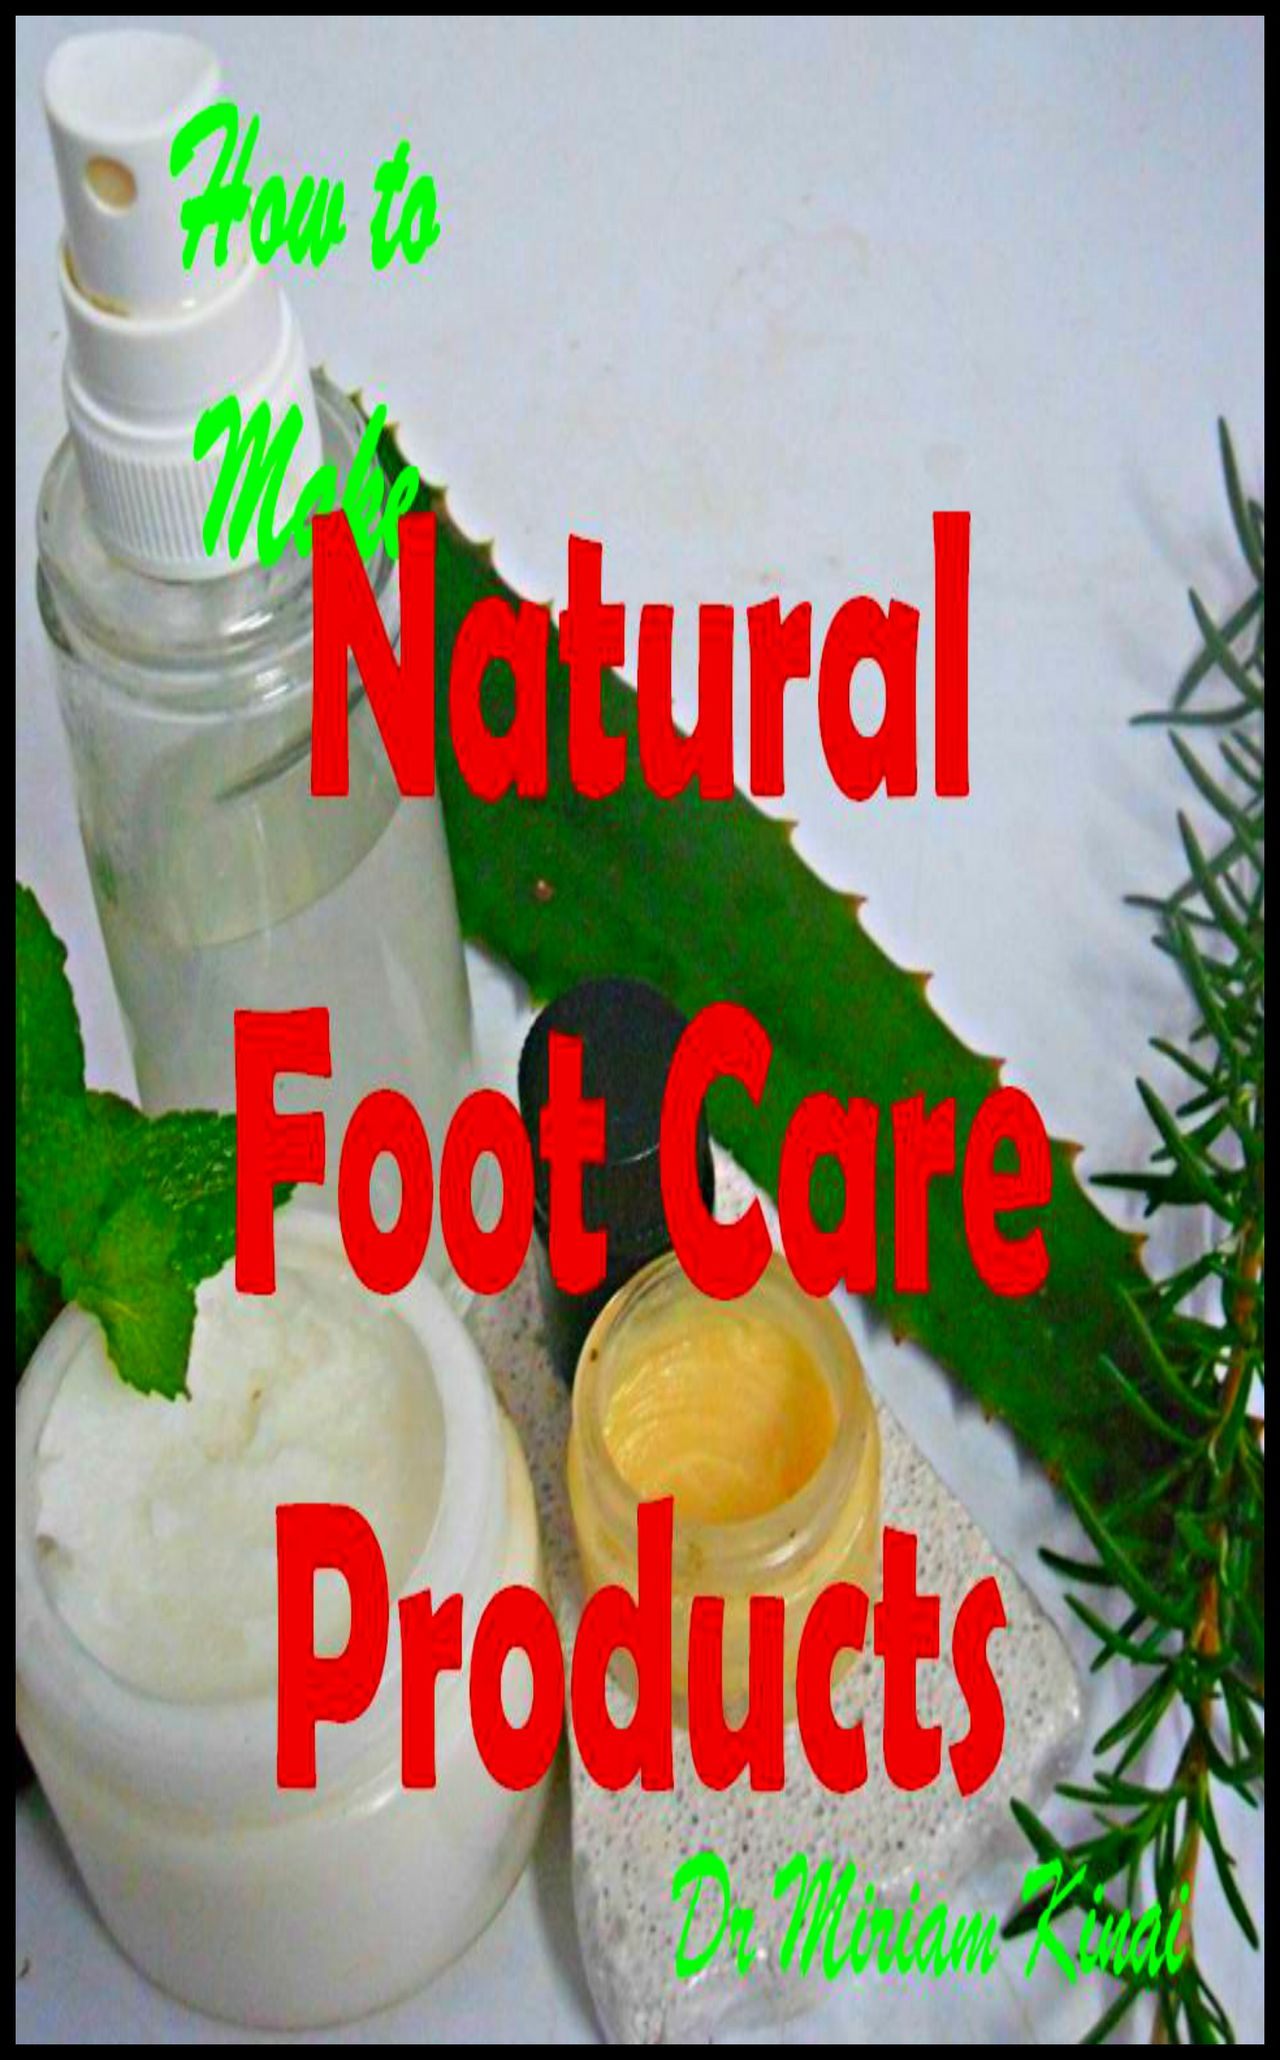 How to Make Natural Foot Care Products